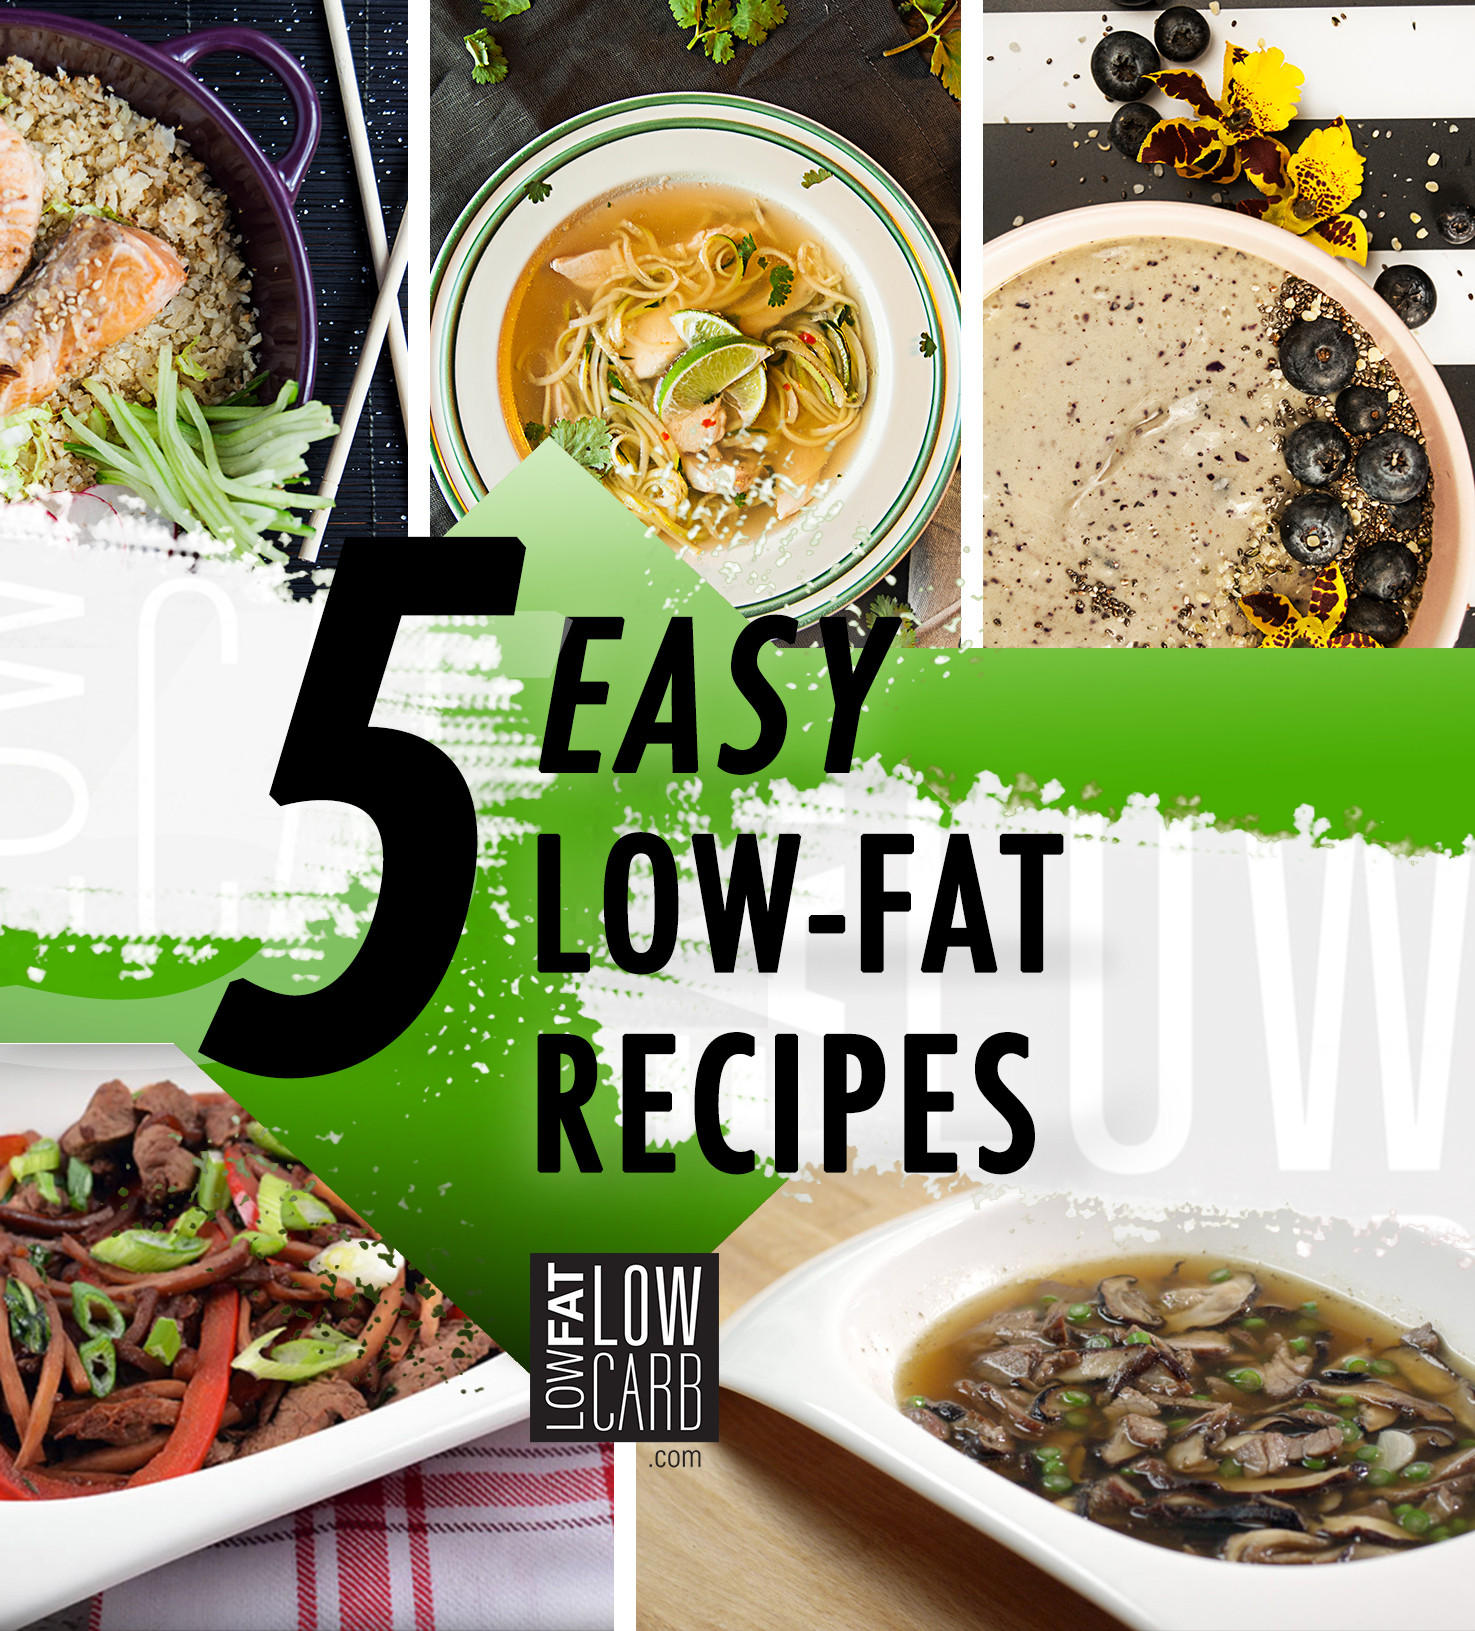 Recipes For Low Fat Diets  5 Low Fat Diet Recipes for a Healthy Start Low Fat Low Carb